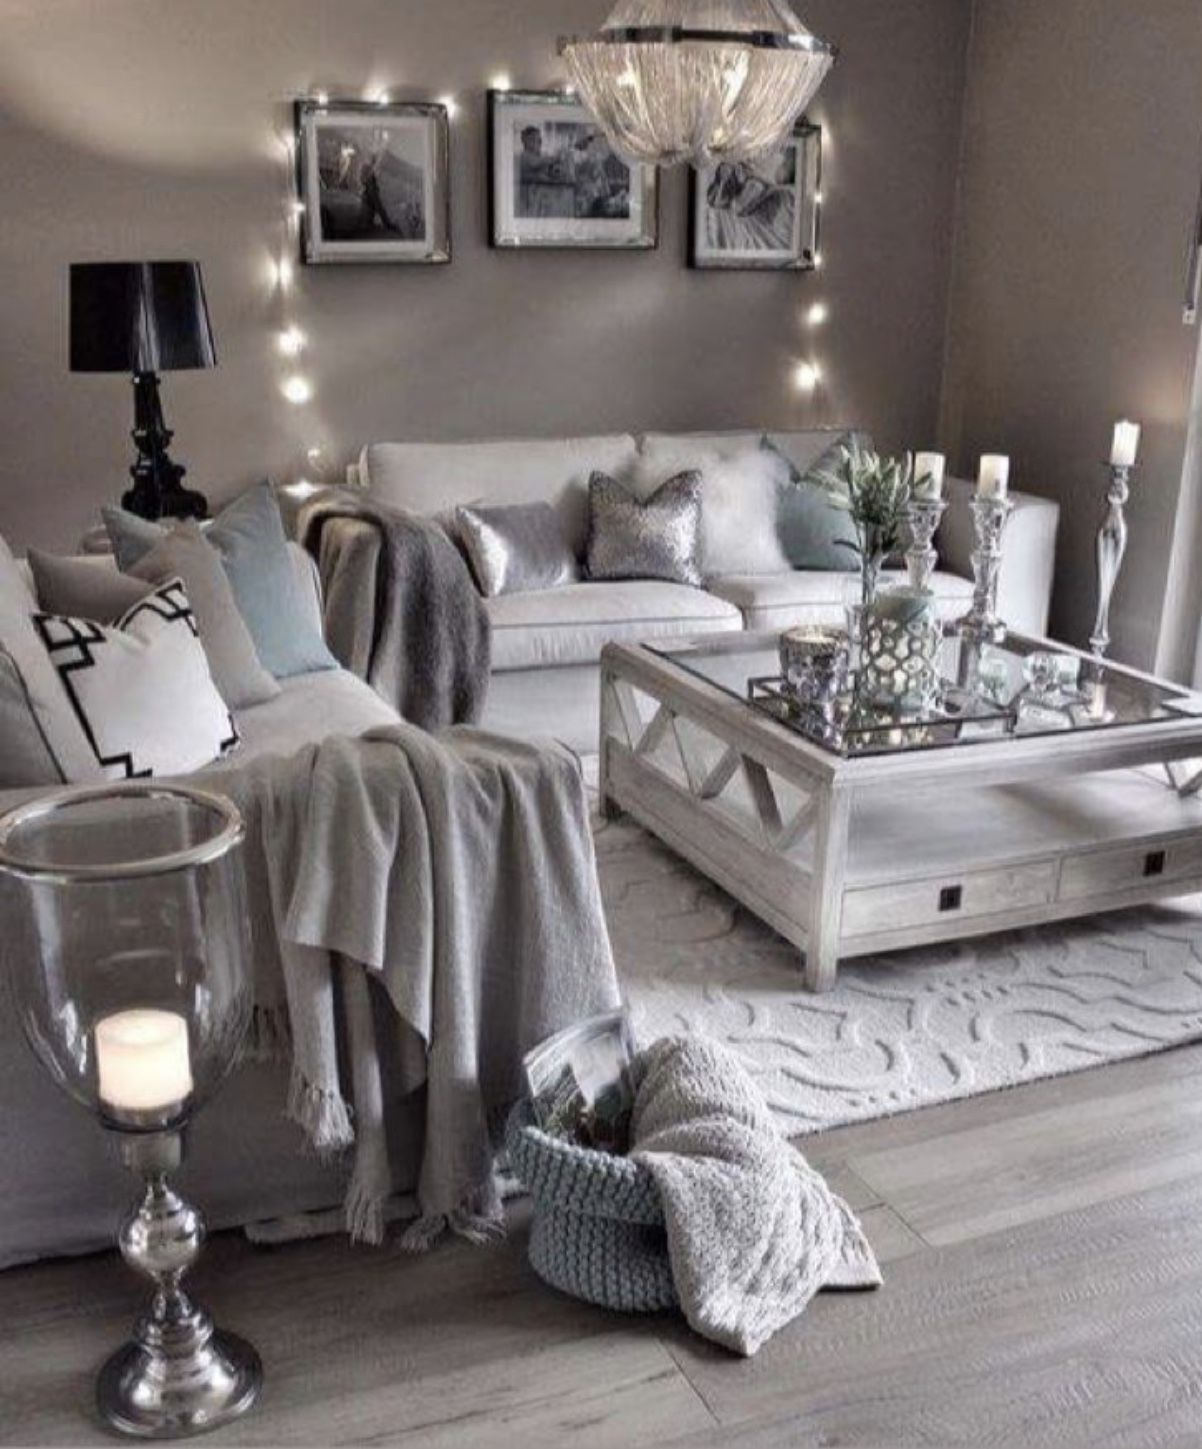 A Rustic Glam Bedroom Designed By Refresh Home And Featured By Thistlewood Farms Recreated For Less By Living Room Grey Farm House Living Room Chic Living Room